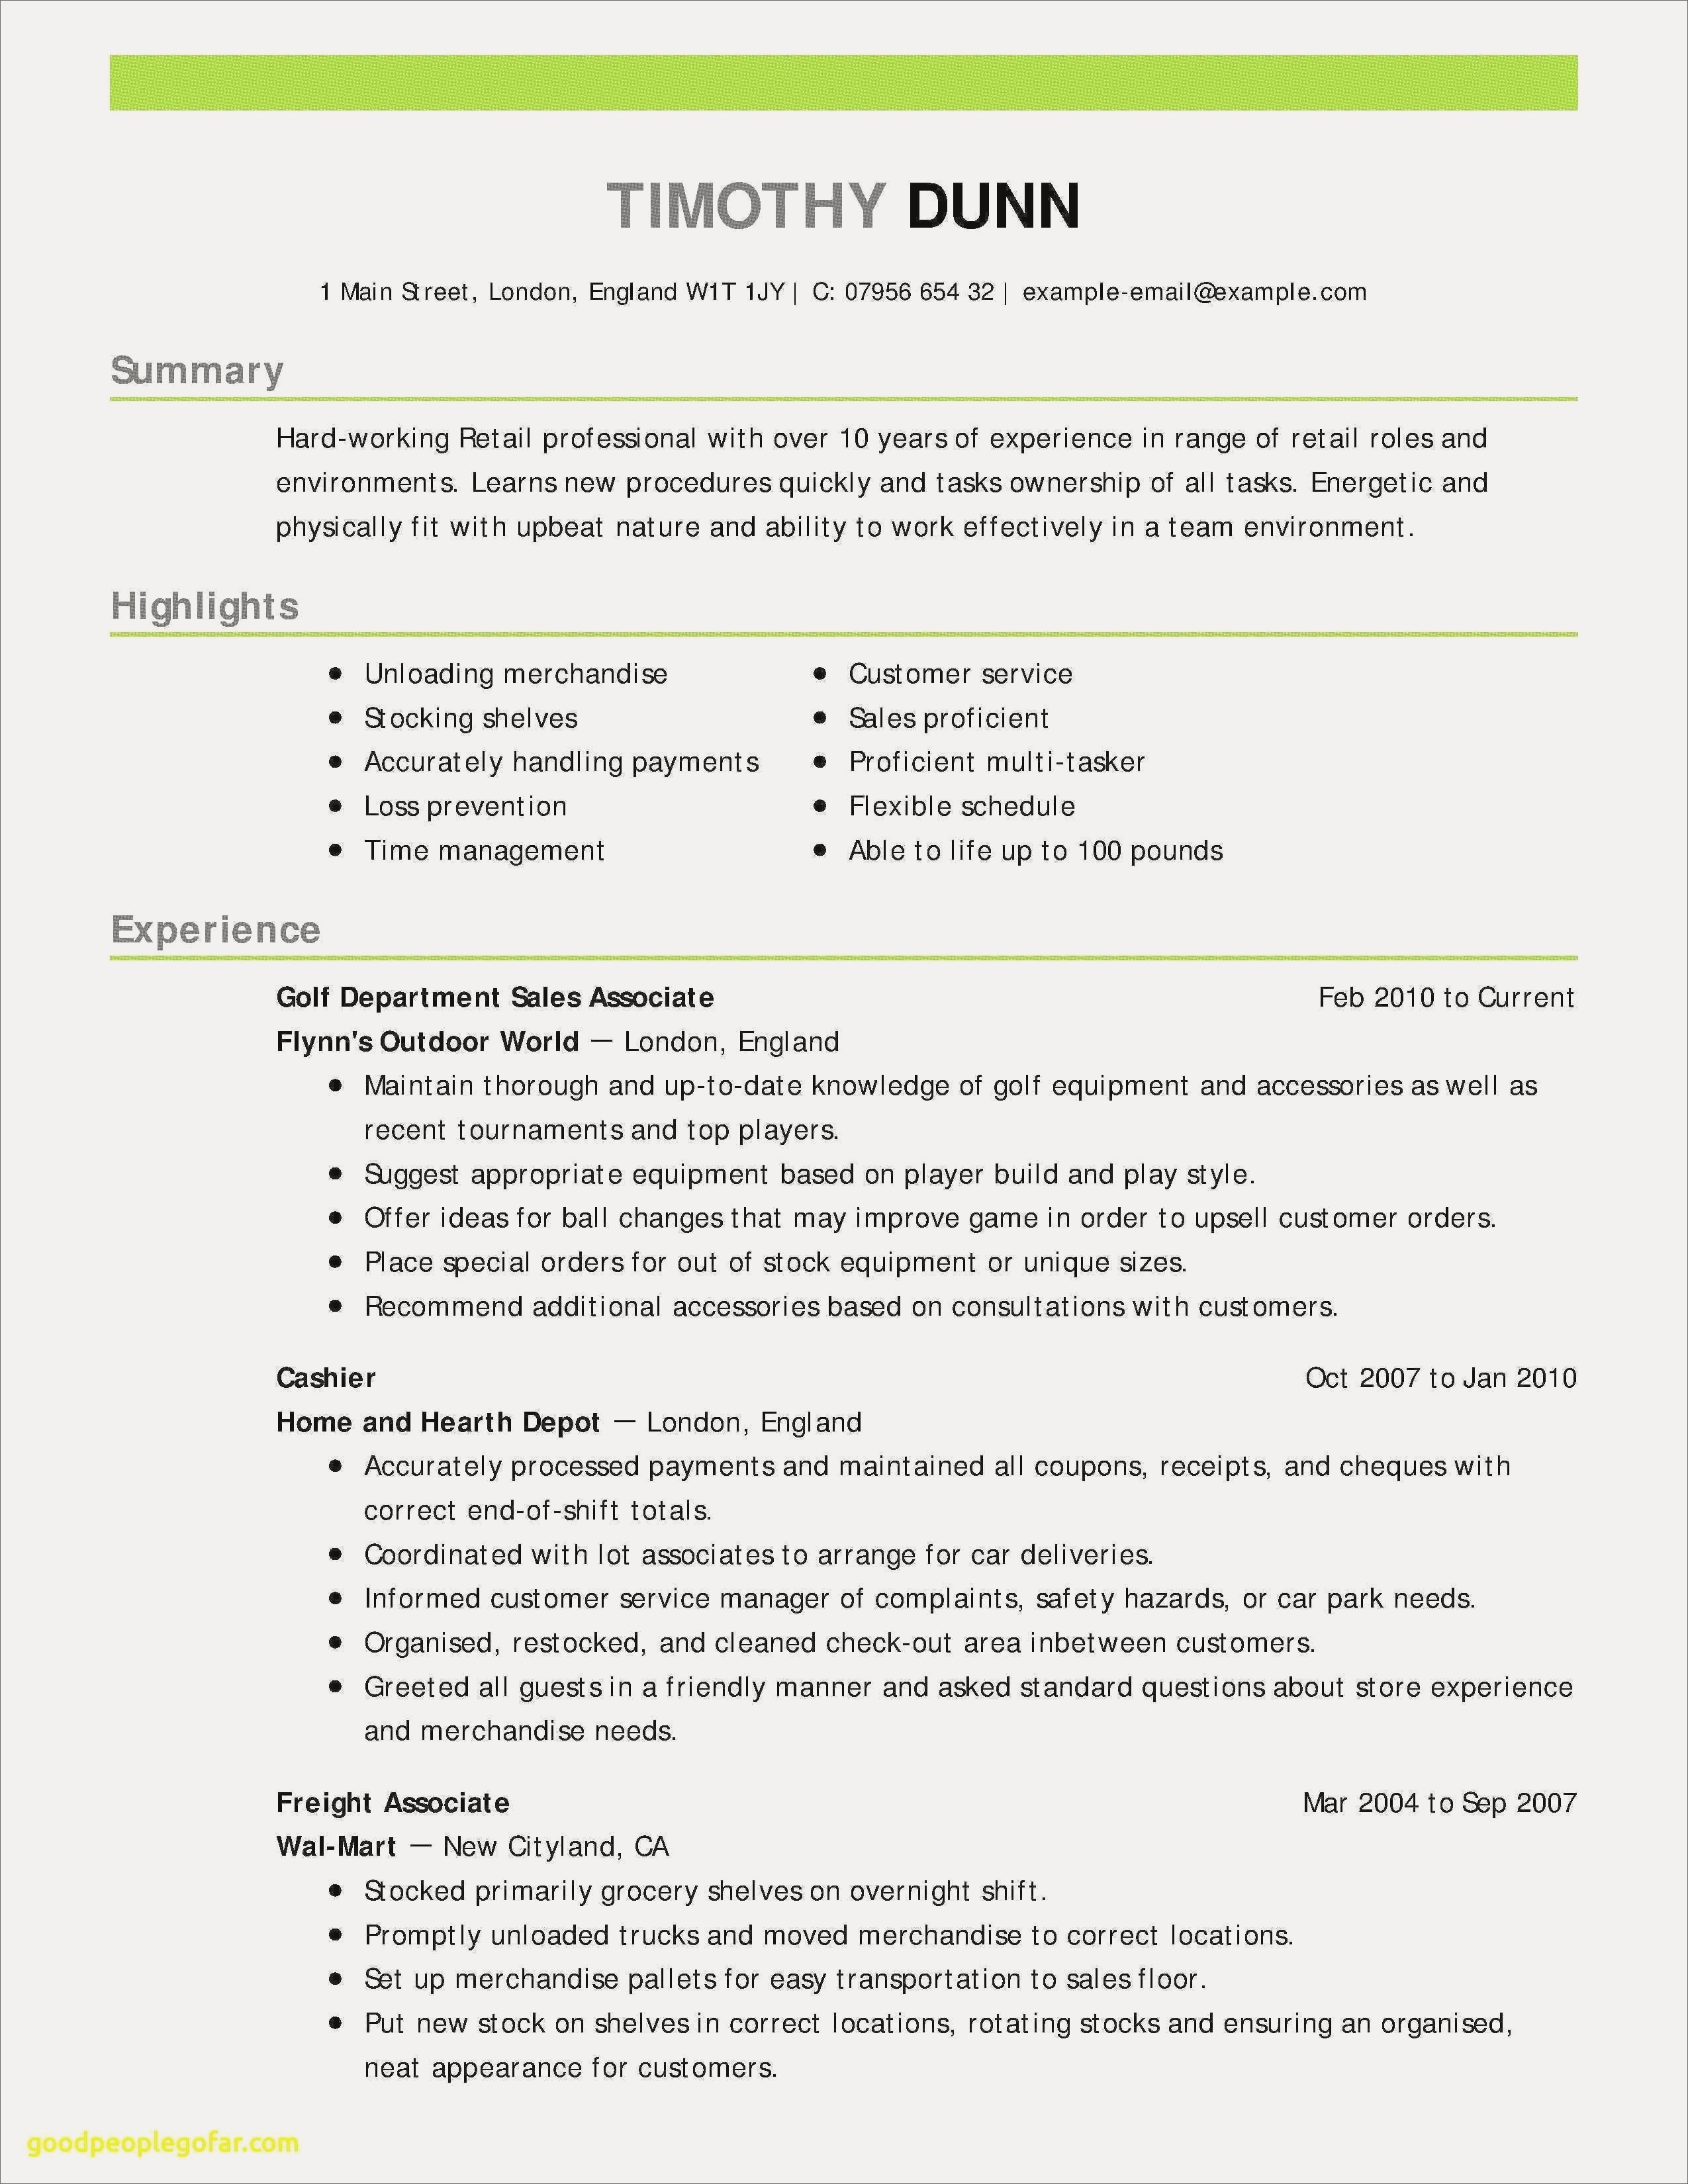 skills for resume customer service example-Resume Examples Skills And Abilities Best Customer Service Resume Sample Beautiful Resume Examples 0d Skills 10-p